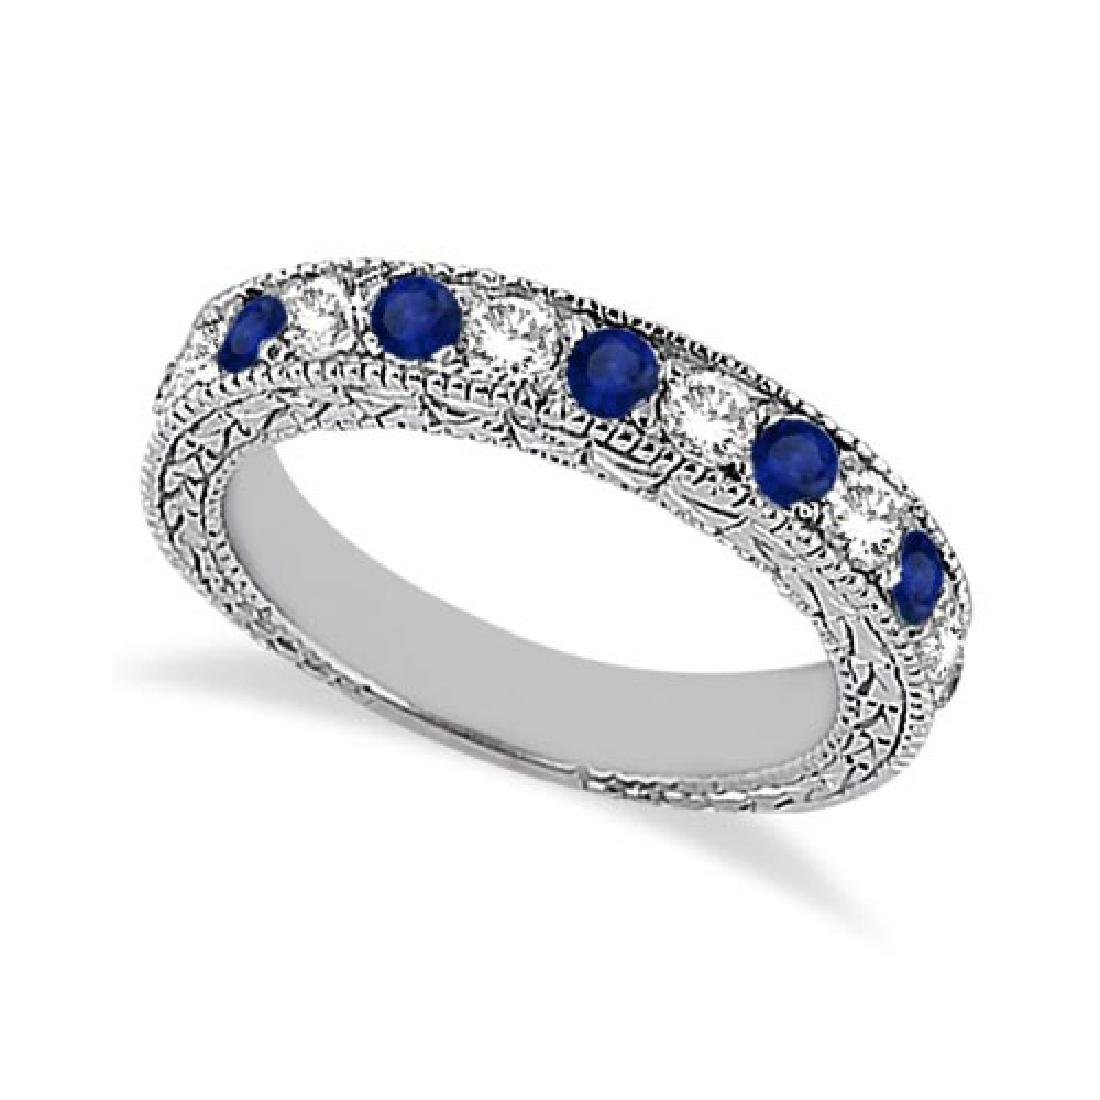 Antique Diamond and Blue Sapphire Wedding Ring 14kt Whi